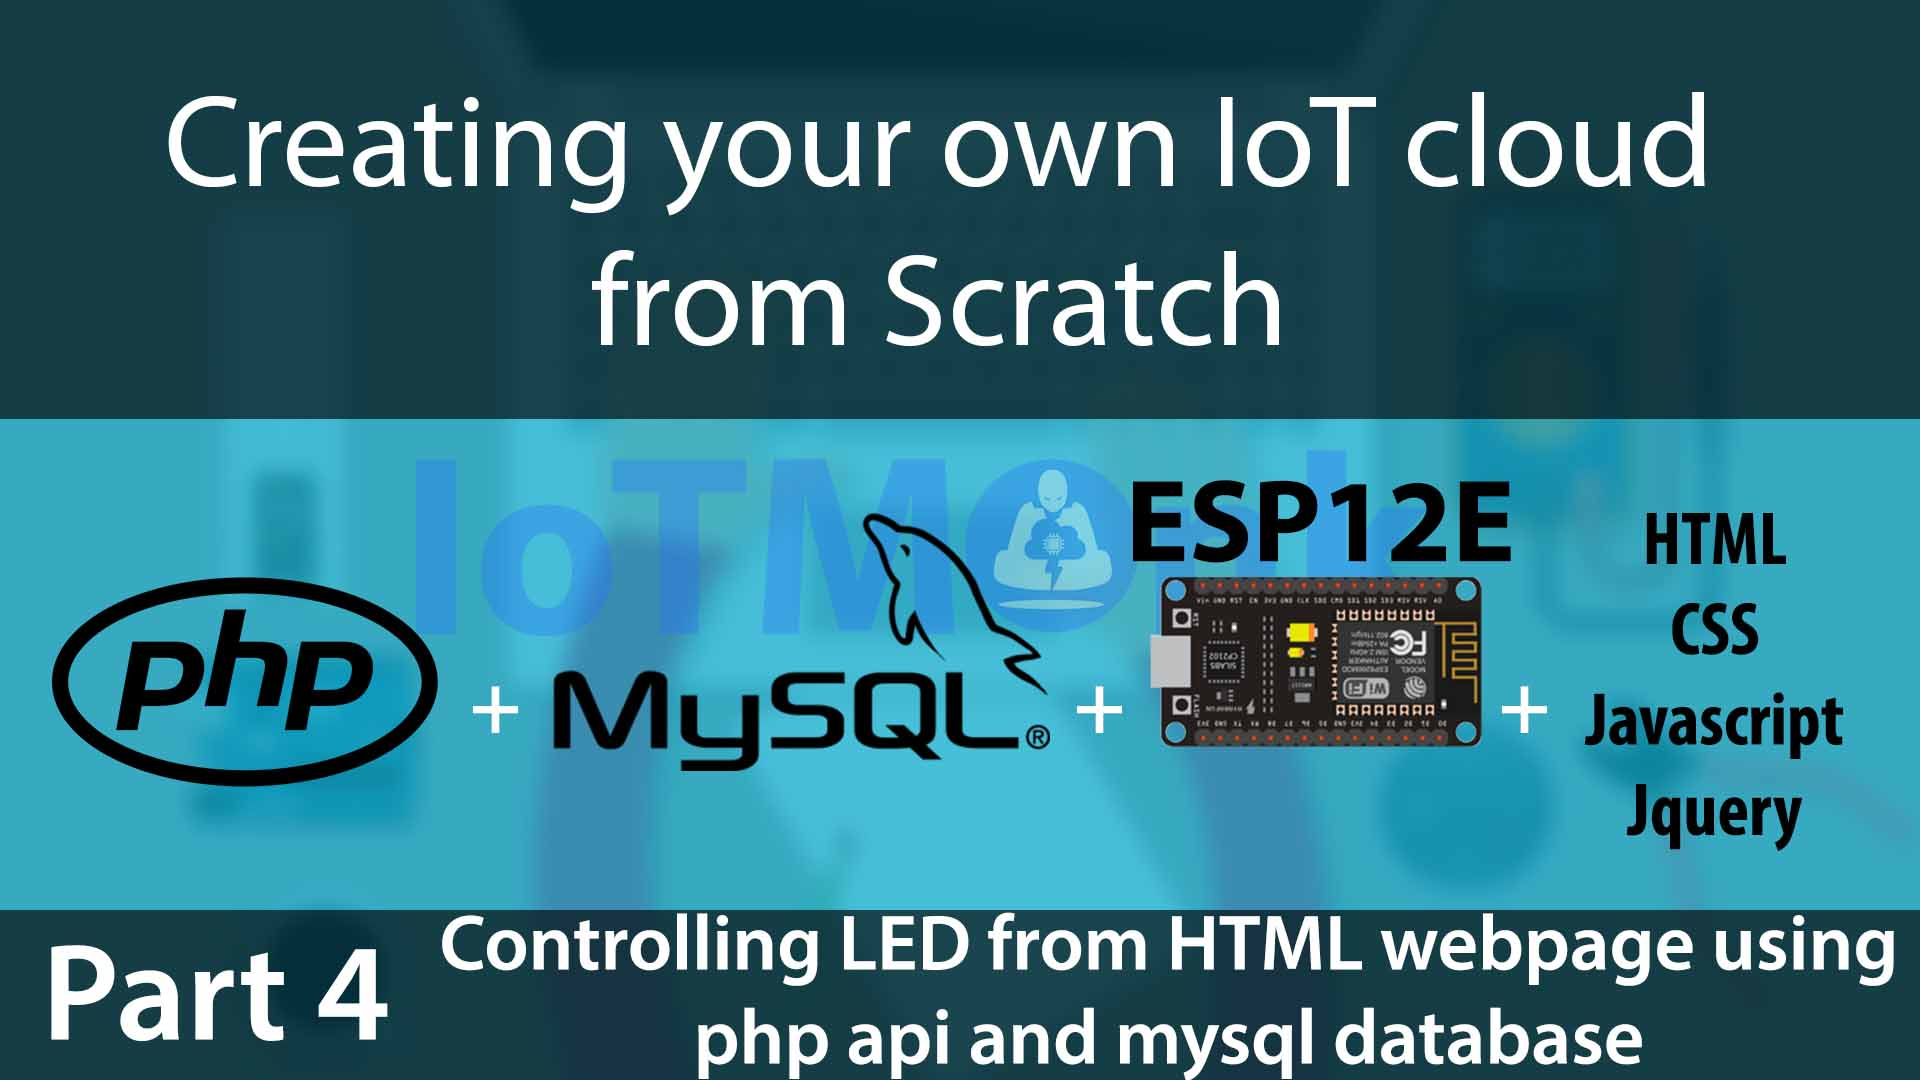 Creating your own IoT Cloud from scratch using php, Mysql, ESP12E